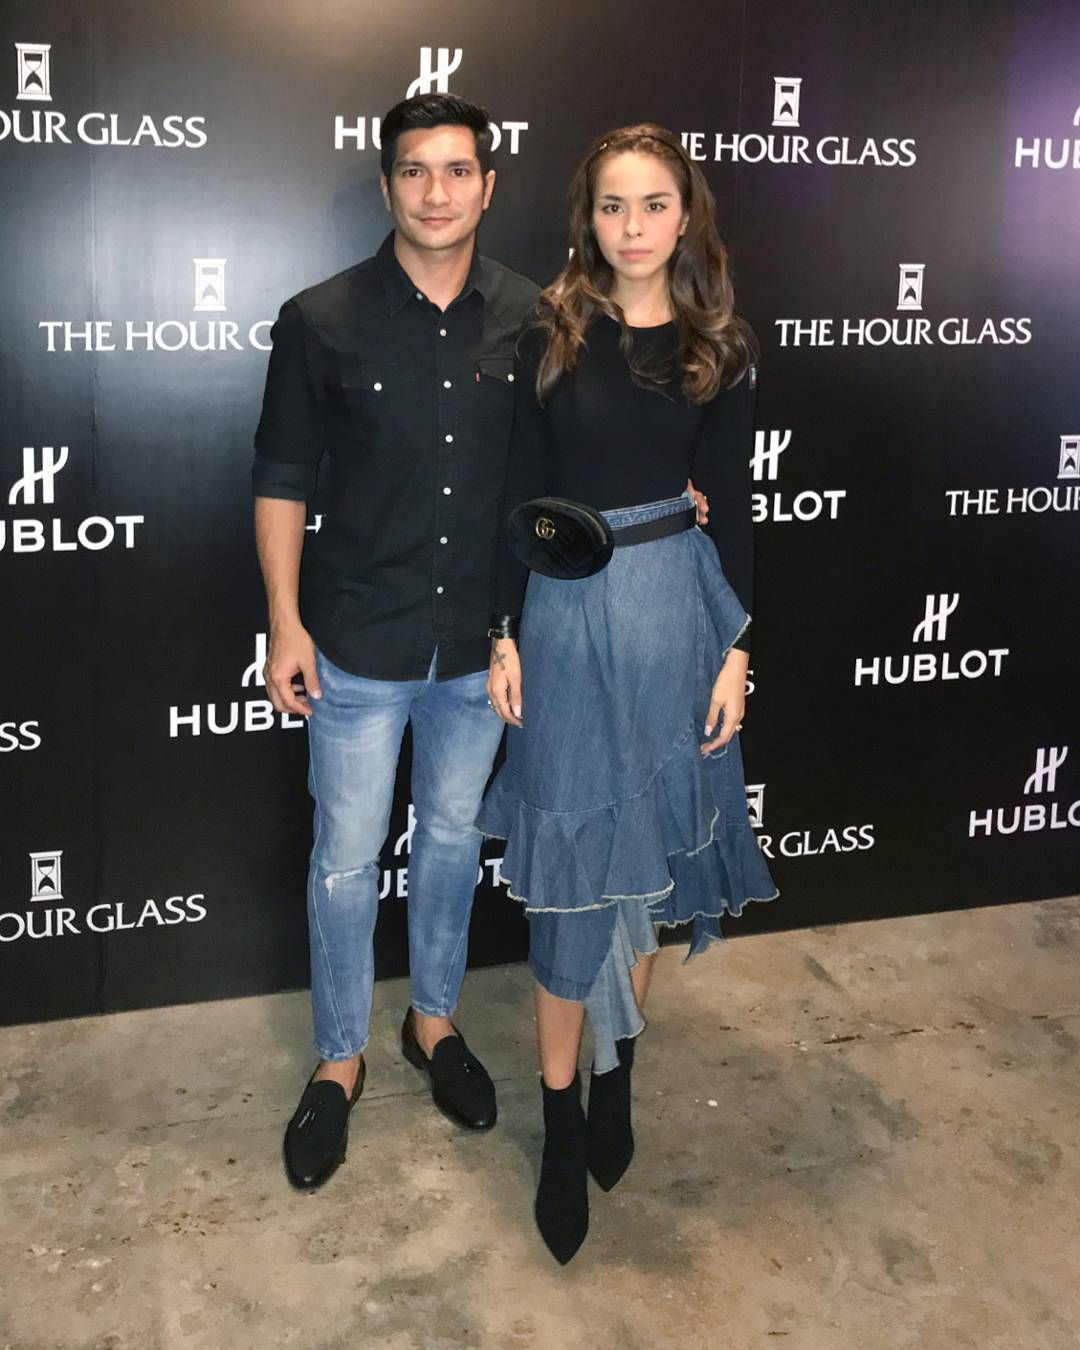 Kim Raymond & Keith Foo 2017 oct hublot event